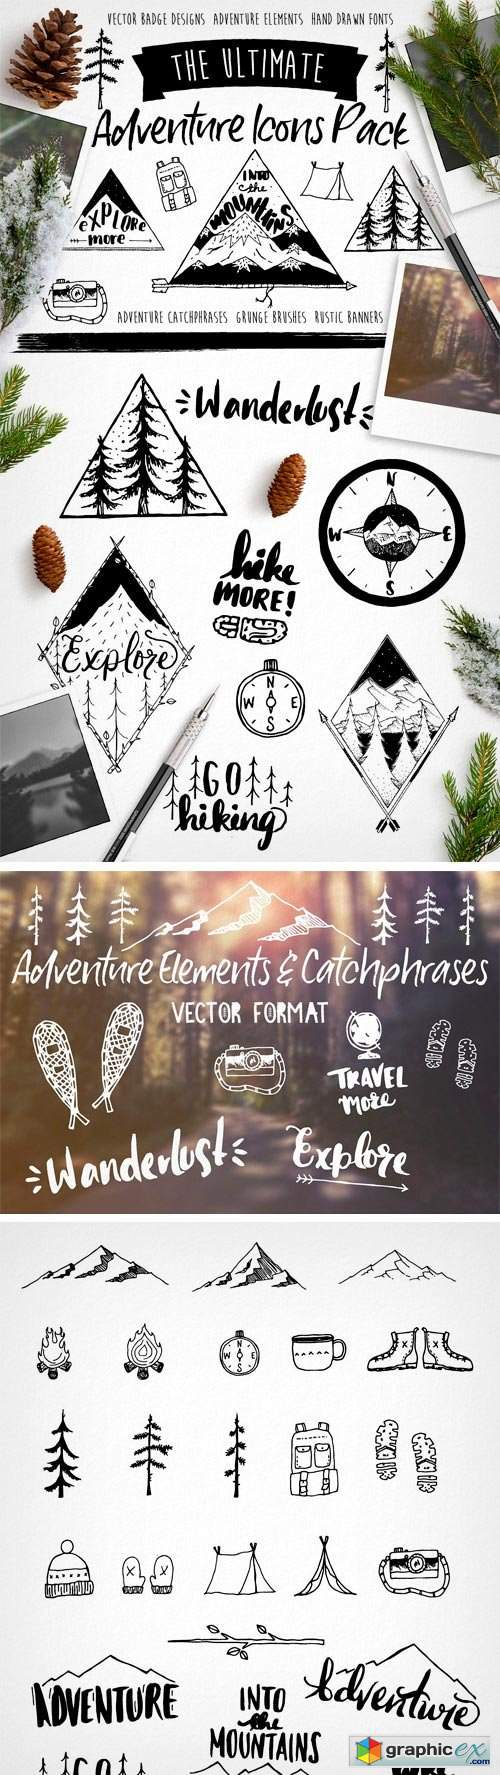 Hand Drawn Adventure Design Elements